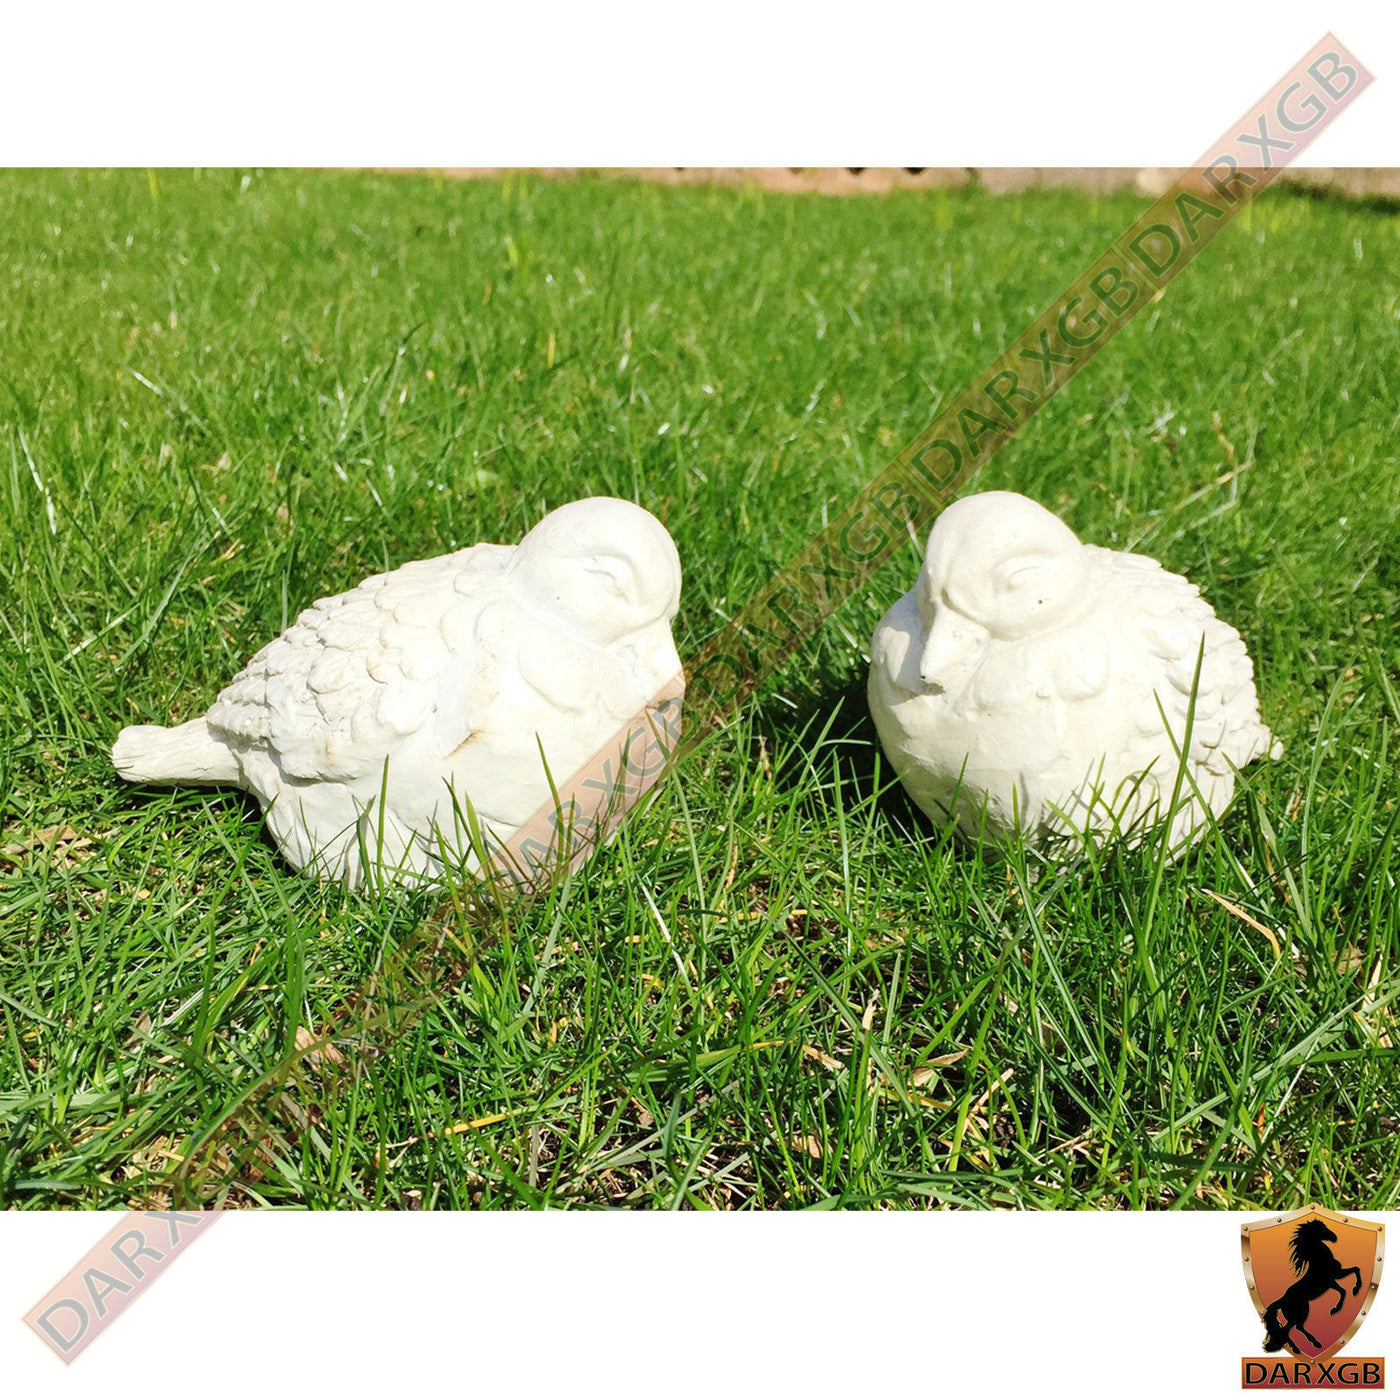 Bird Ornament Resin Eagle Figurine Decoration Gift for Outdoor Garden Lawn